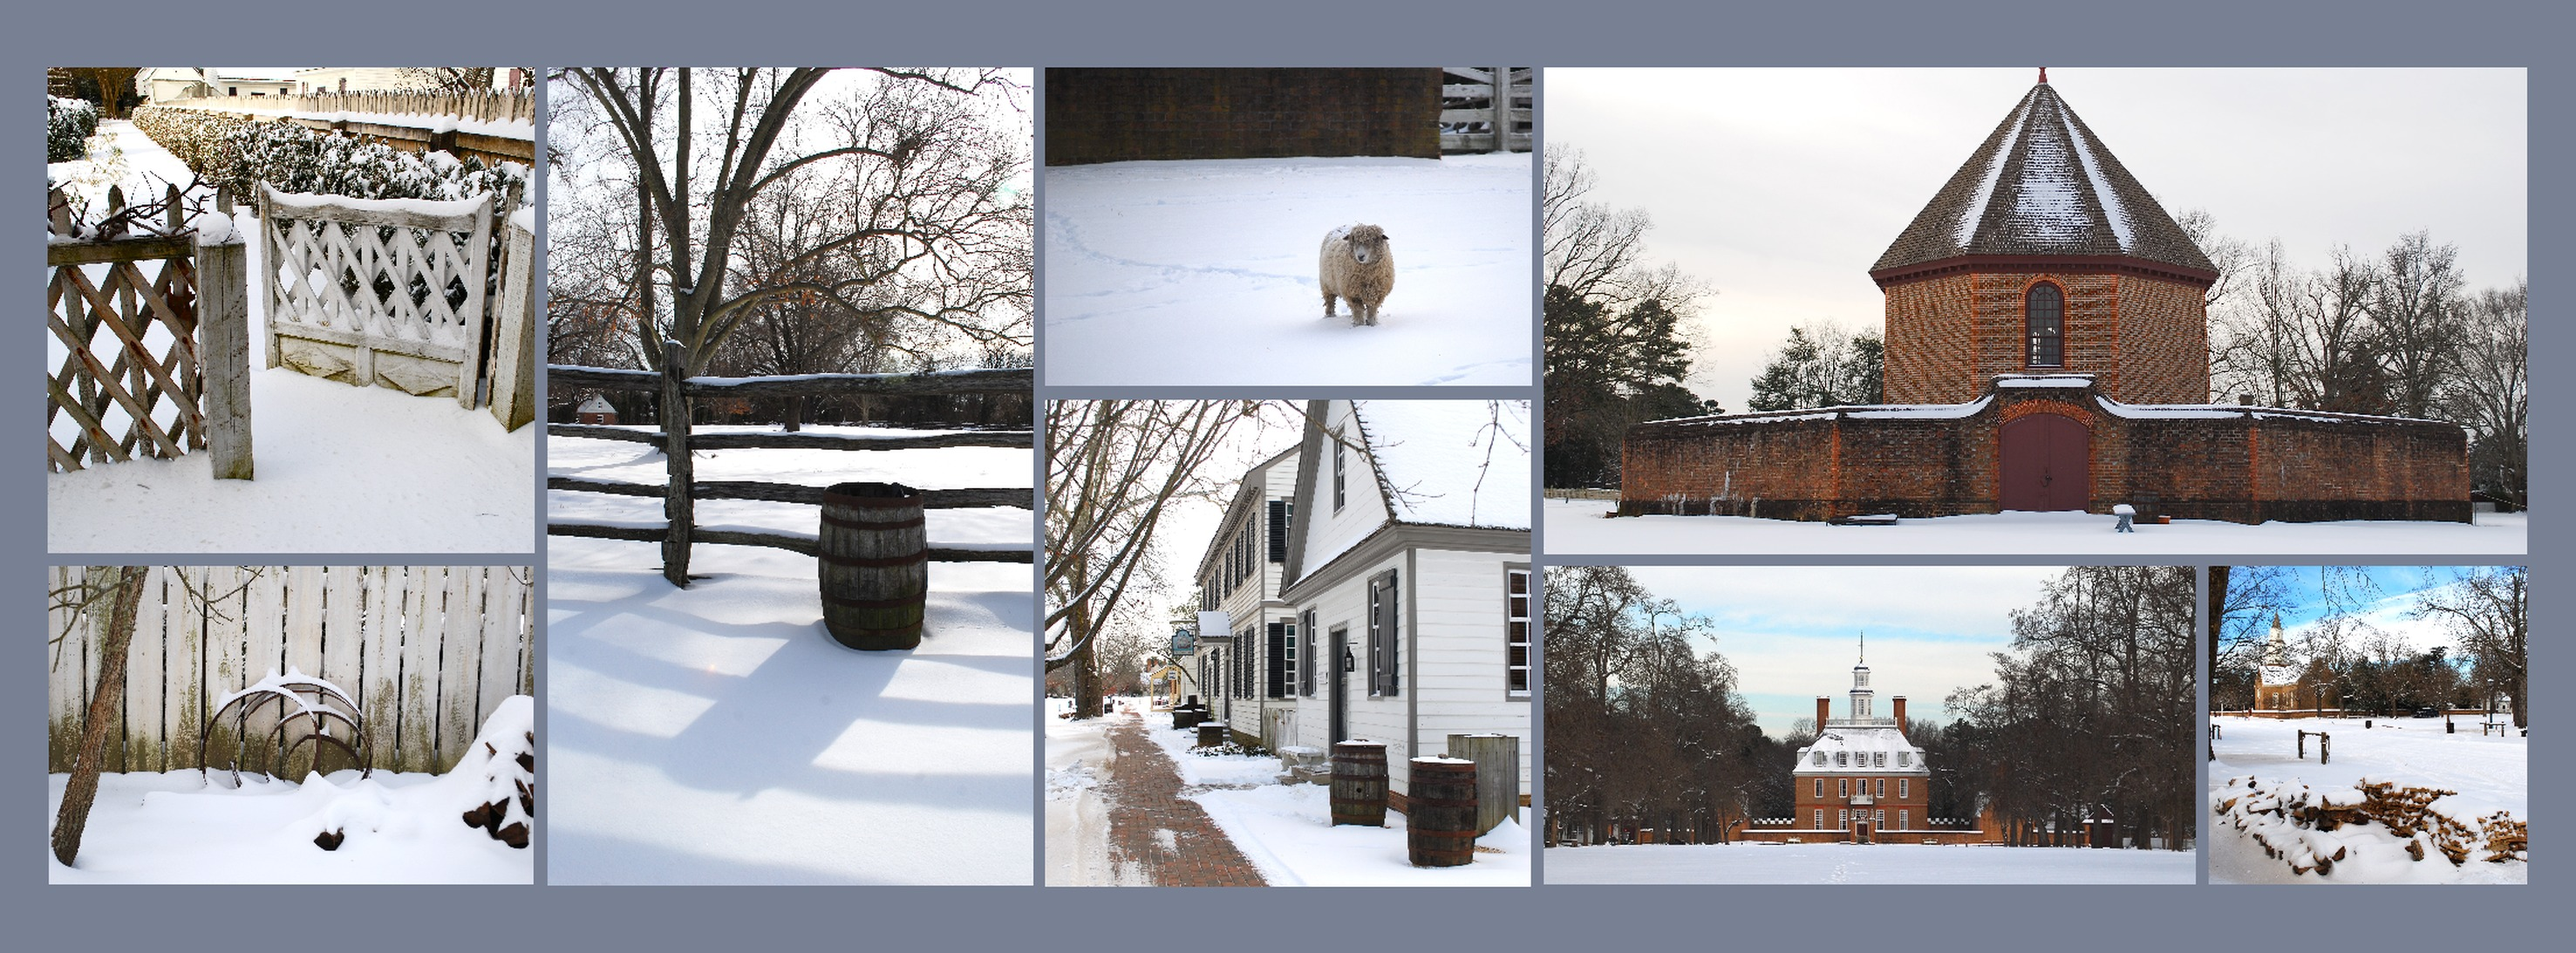 Facebook Cover Collage ~ Winter facebook covers cropdog photo collage